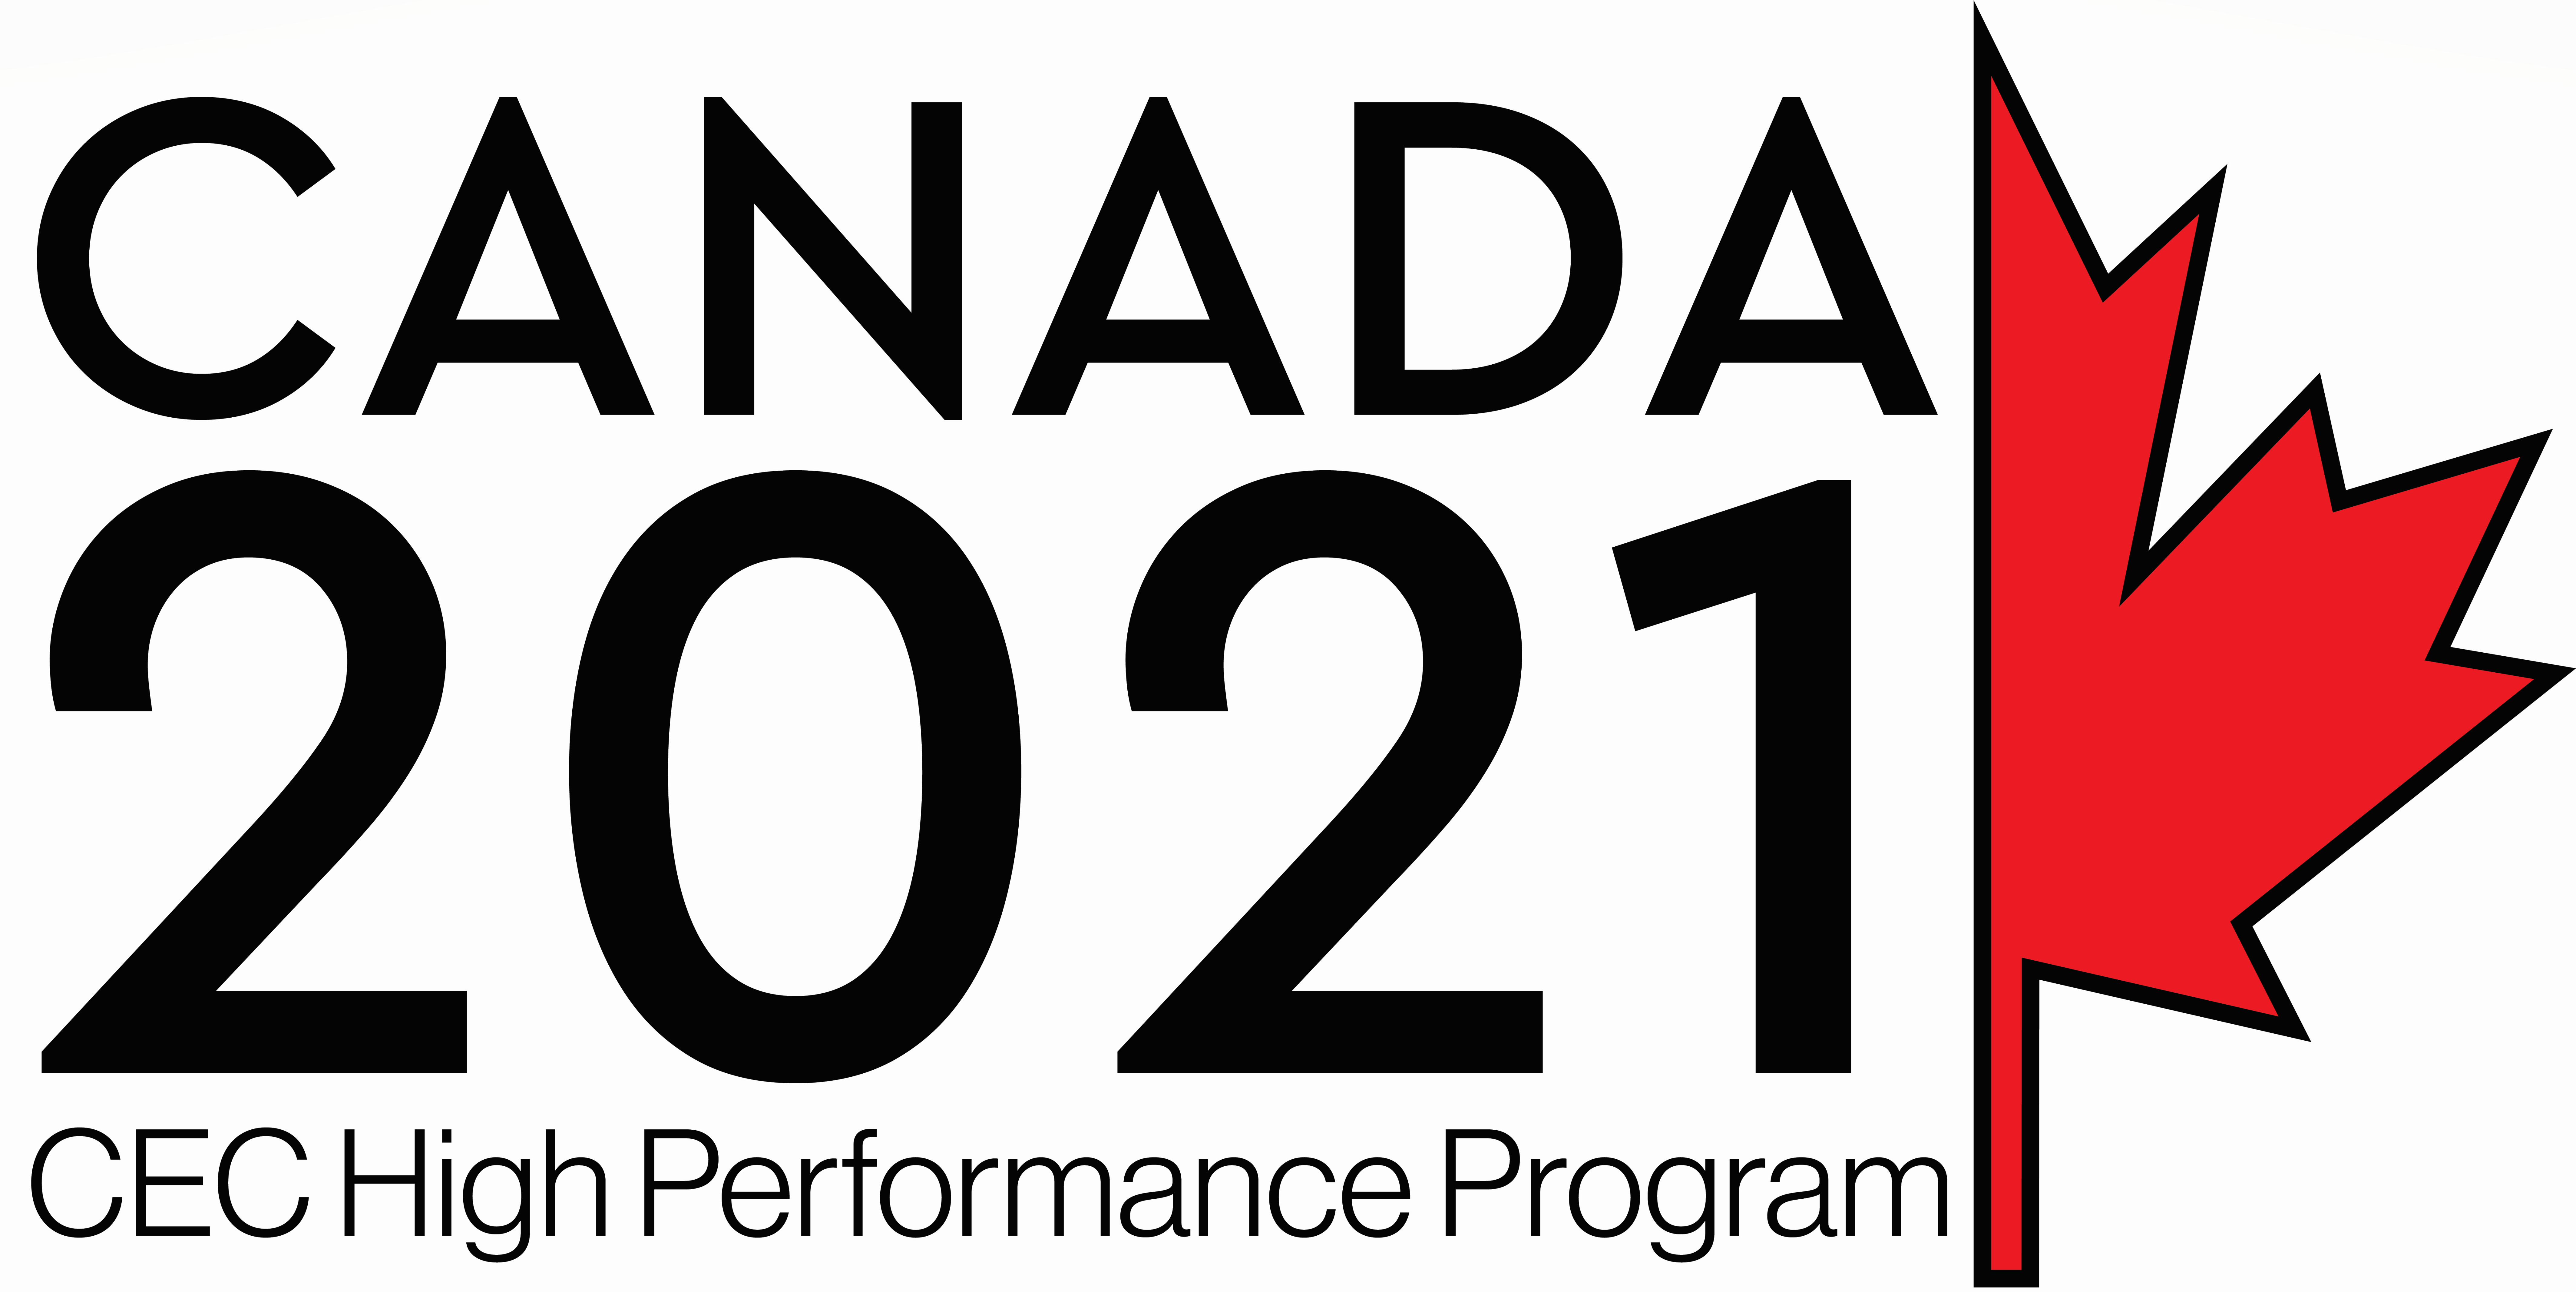 A small contingent of Canadian athletes will compete at the IFSC World Cup events in May 2021